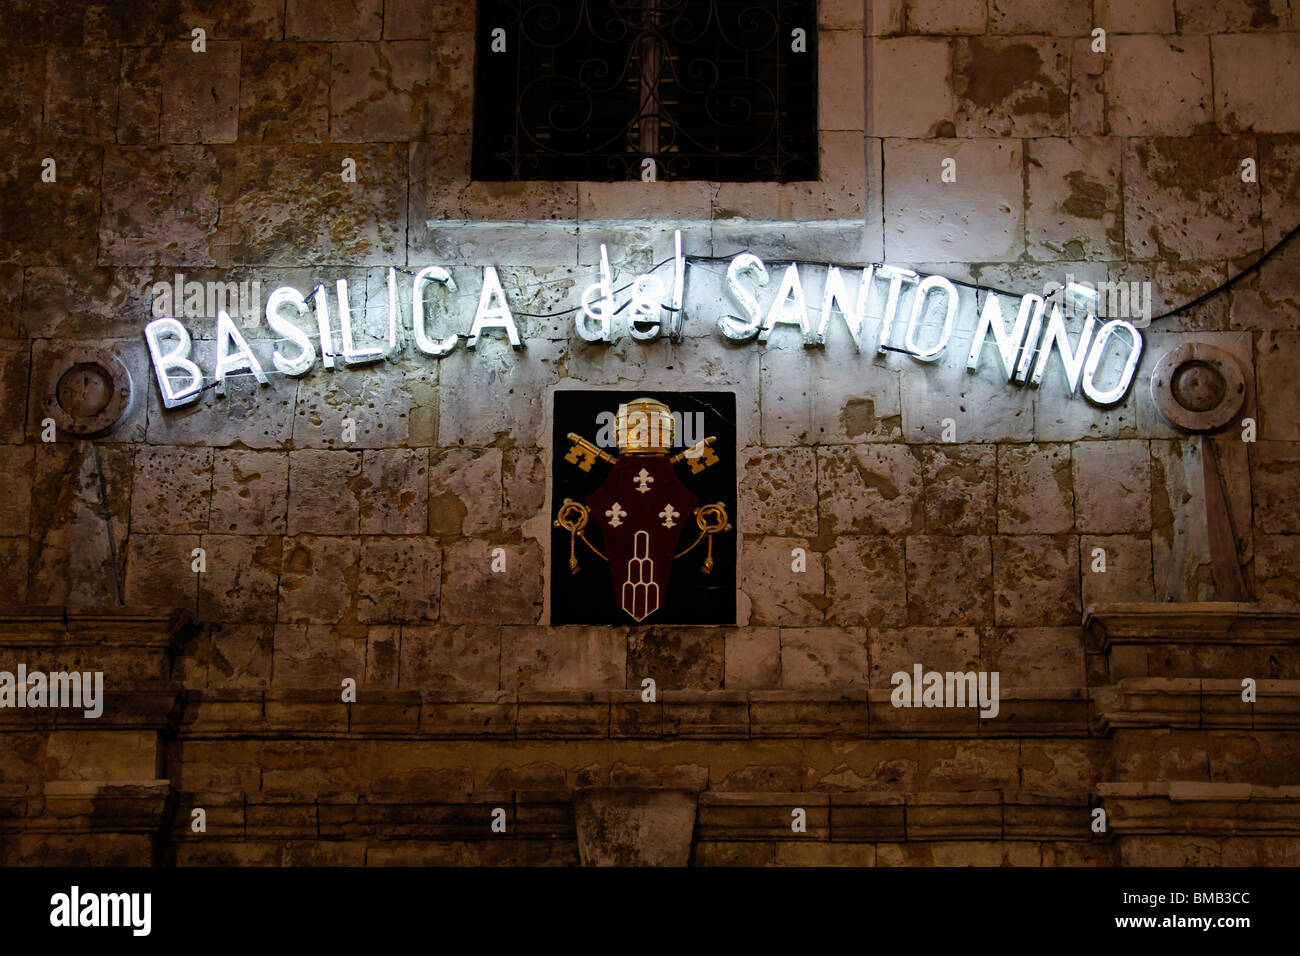 Neon lights on wall of Basilica of Santo Niño - Stock Image